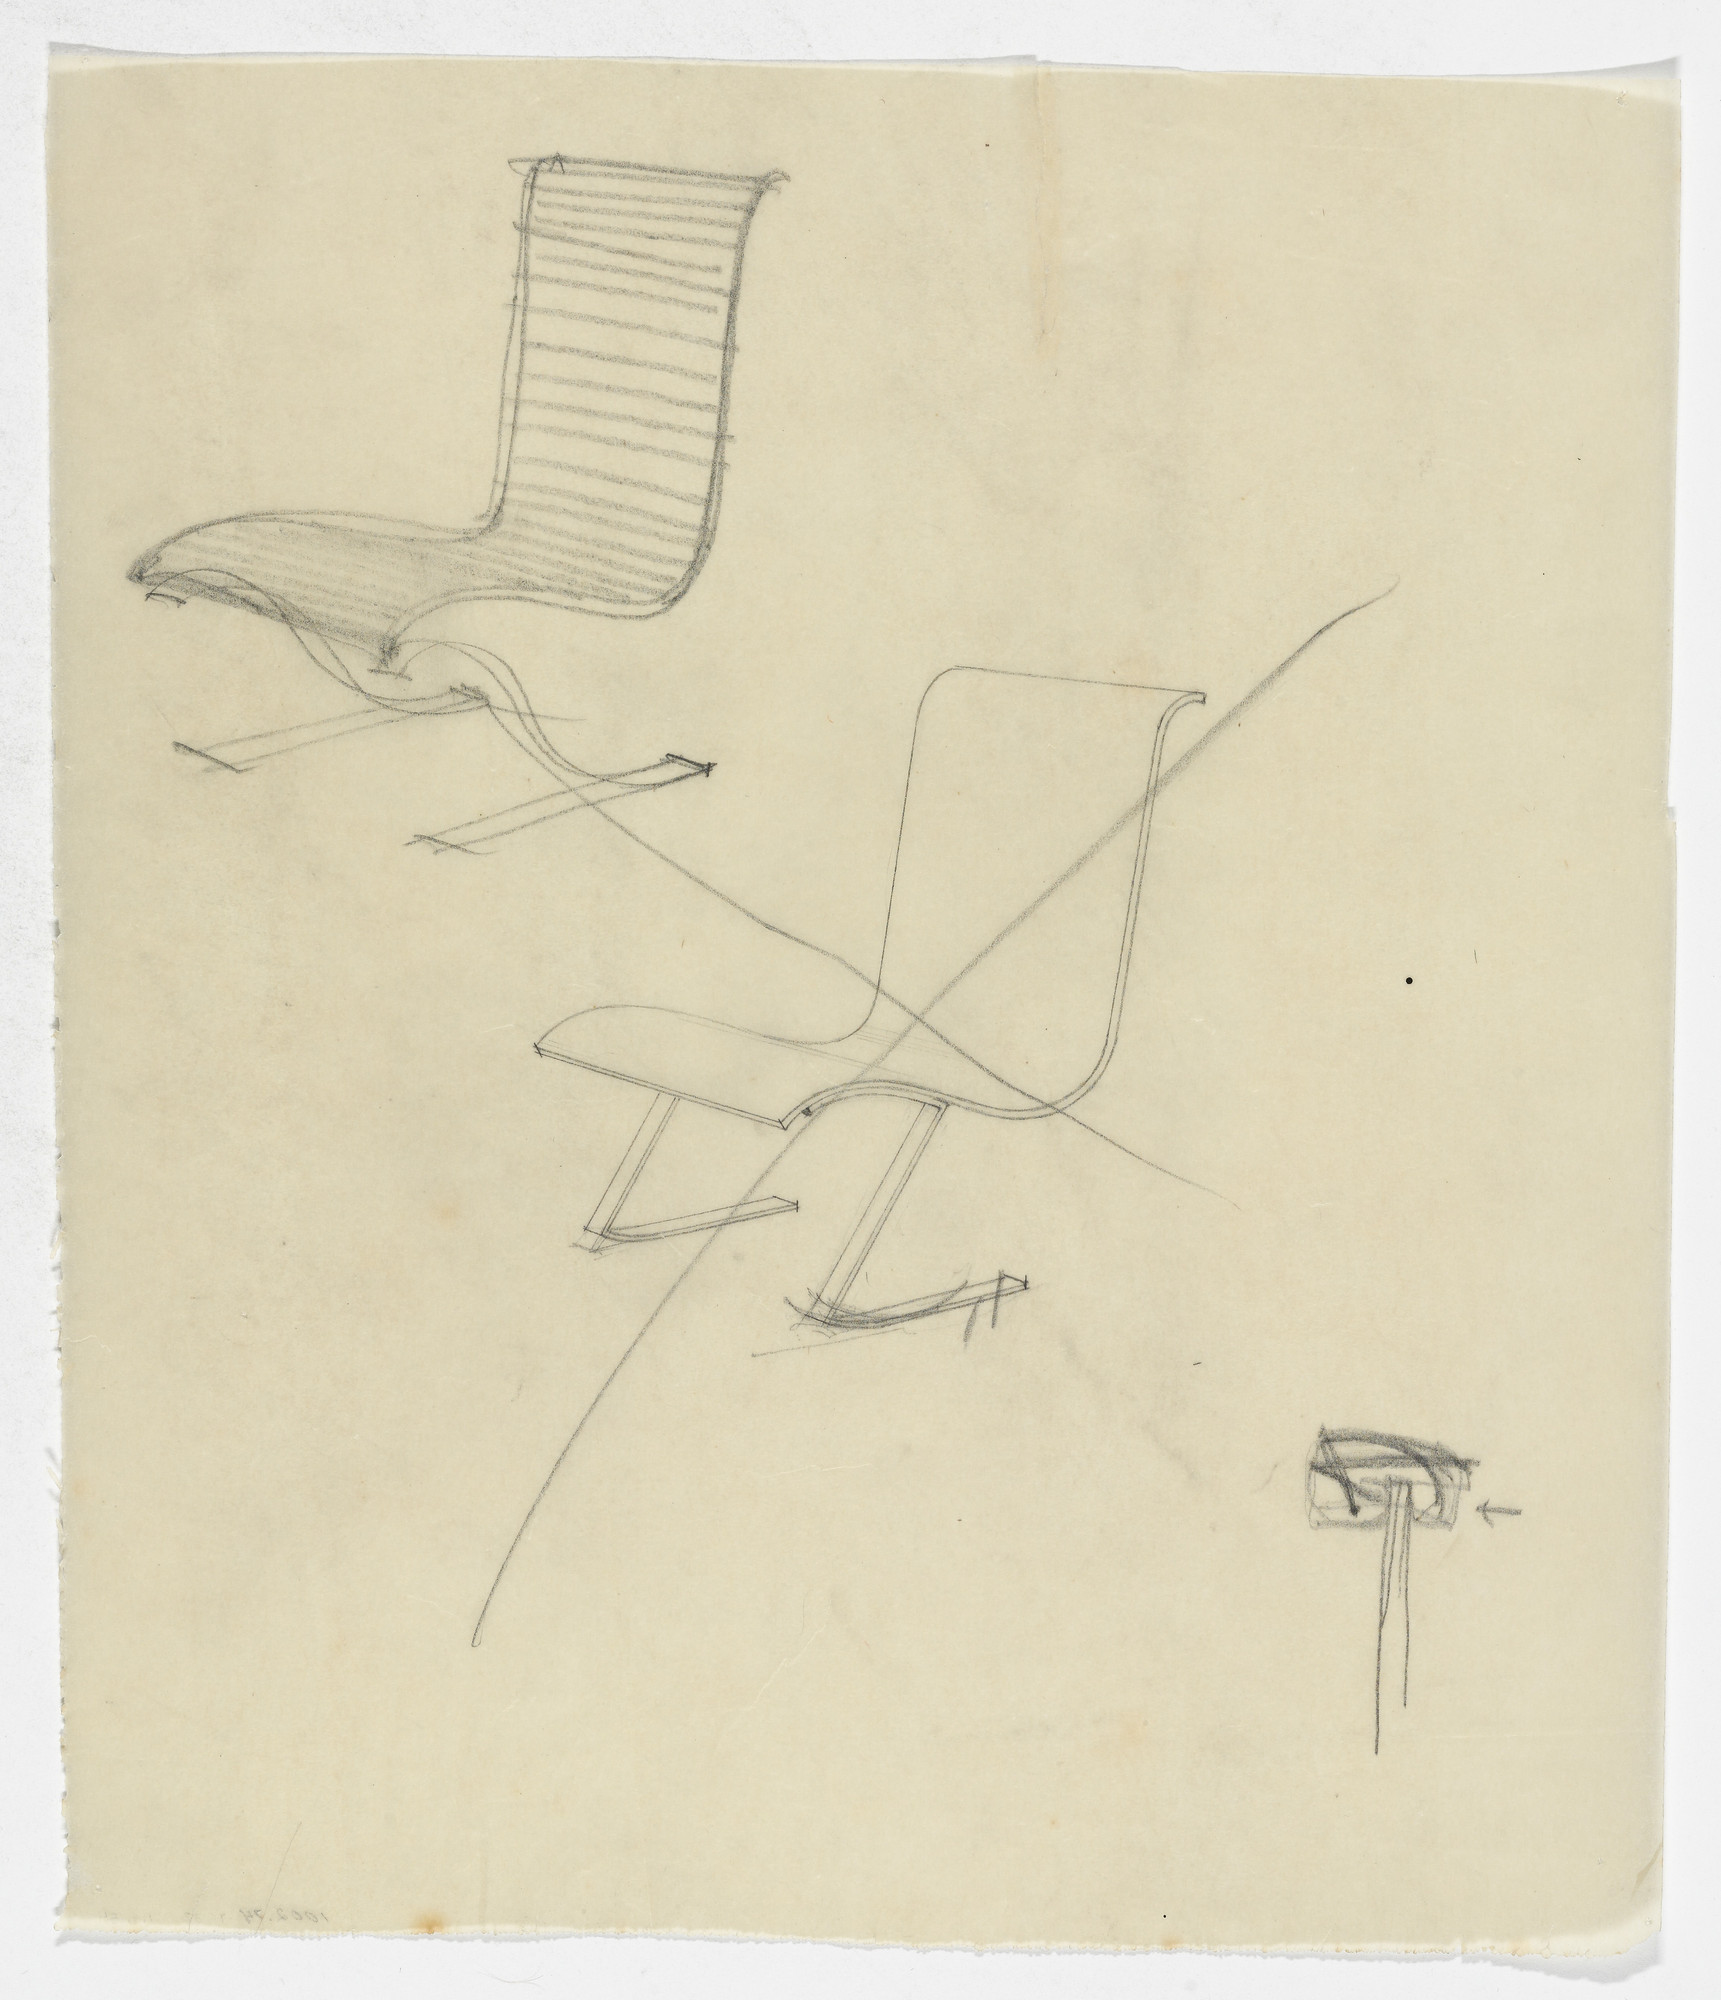 Ludwig Mies van der Rohe. Lounge Chair without Arms (Elevation sketches). 1934